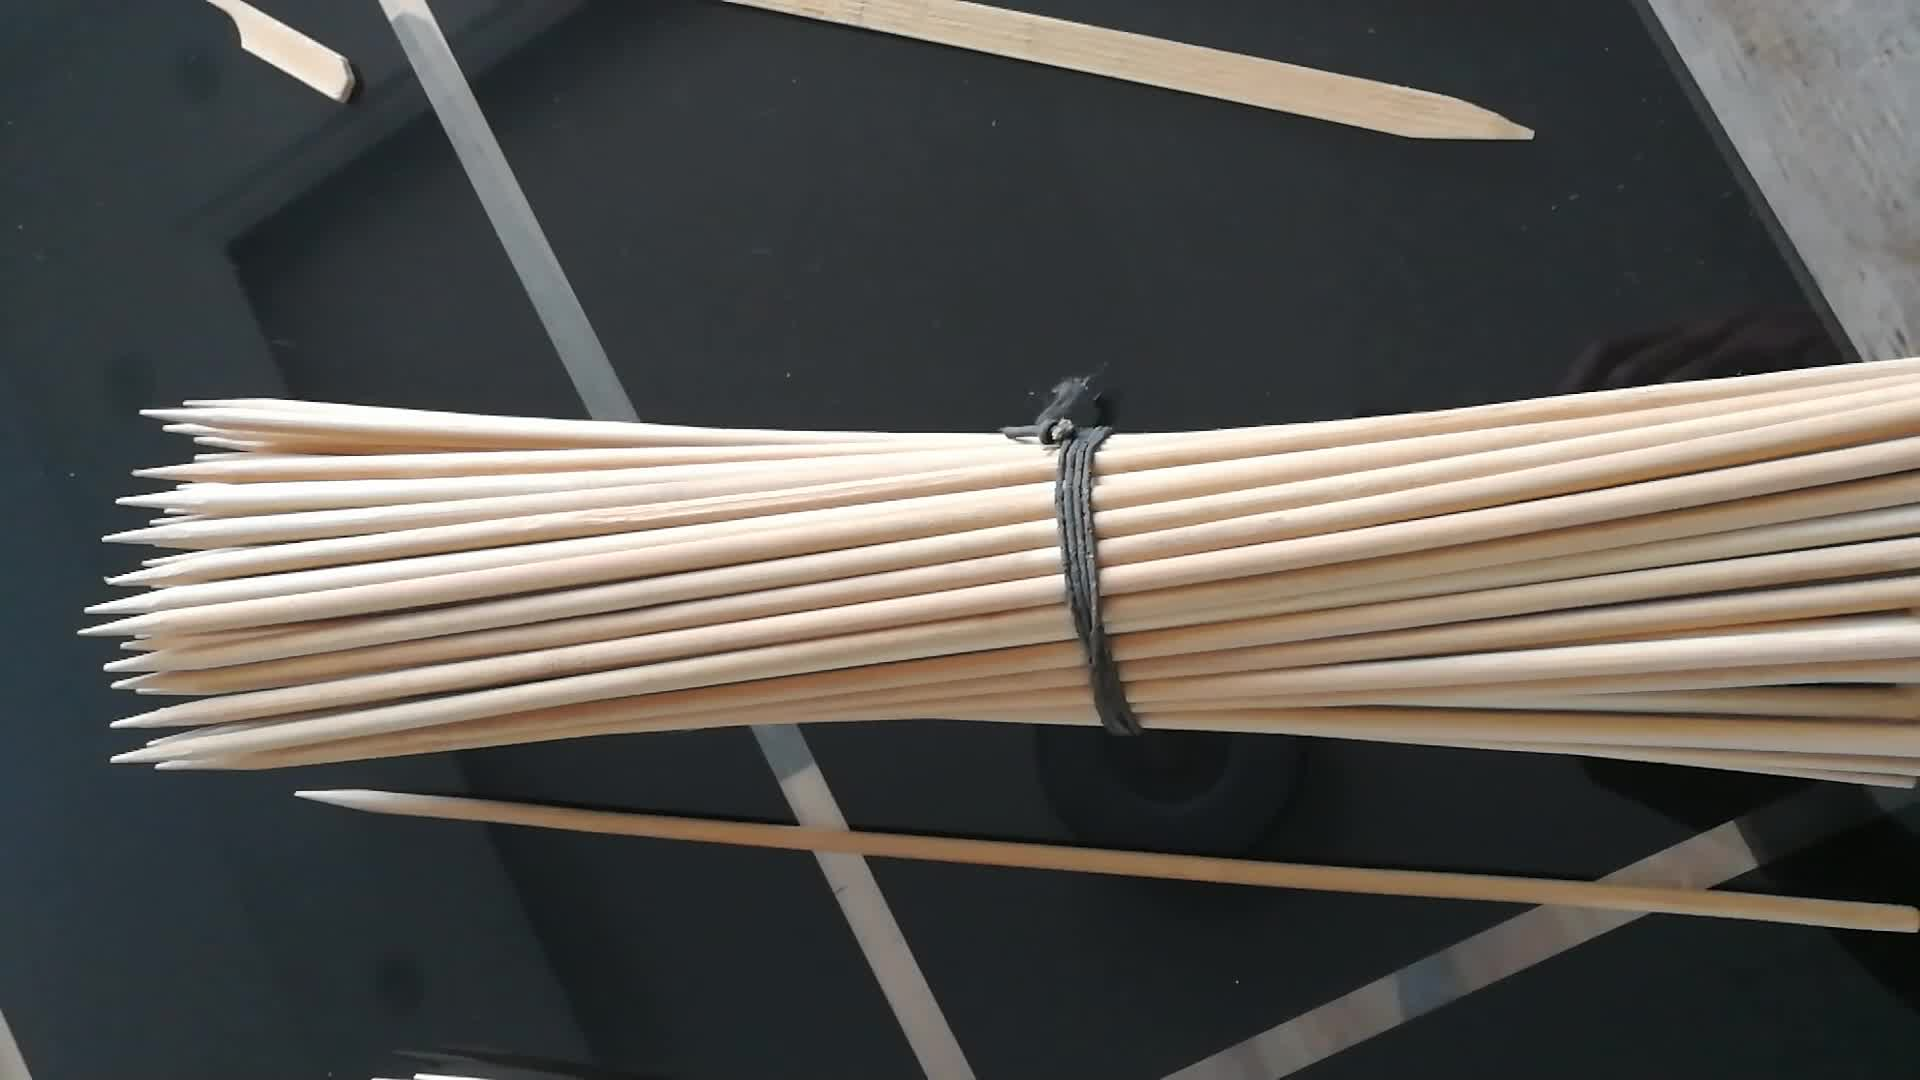 Bamboo Skewers Barbecue Sticks With Round Flat Square